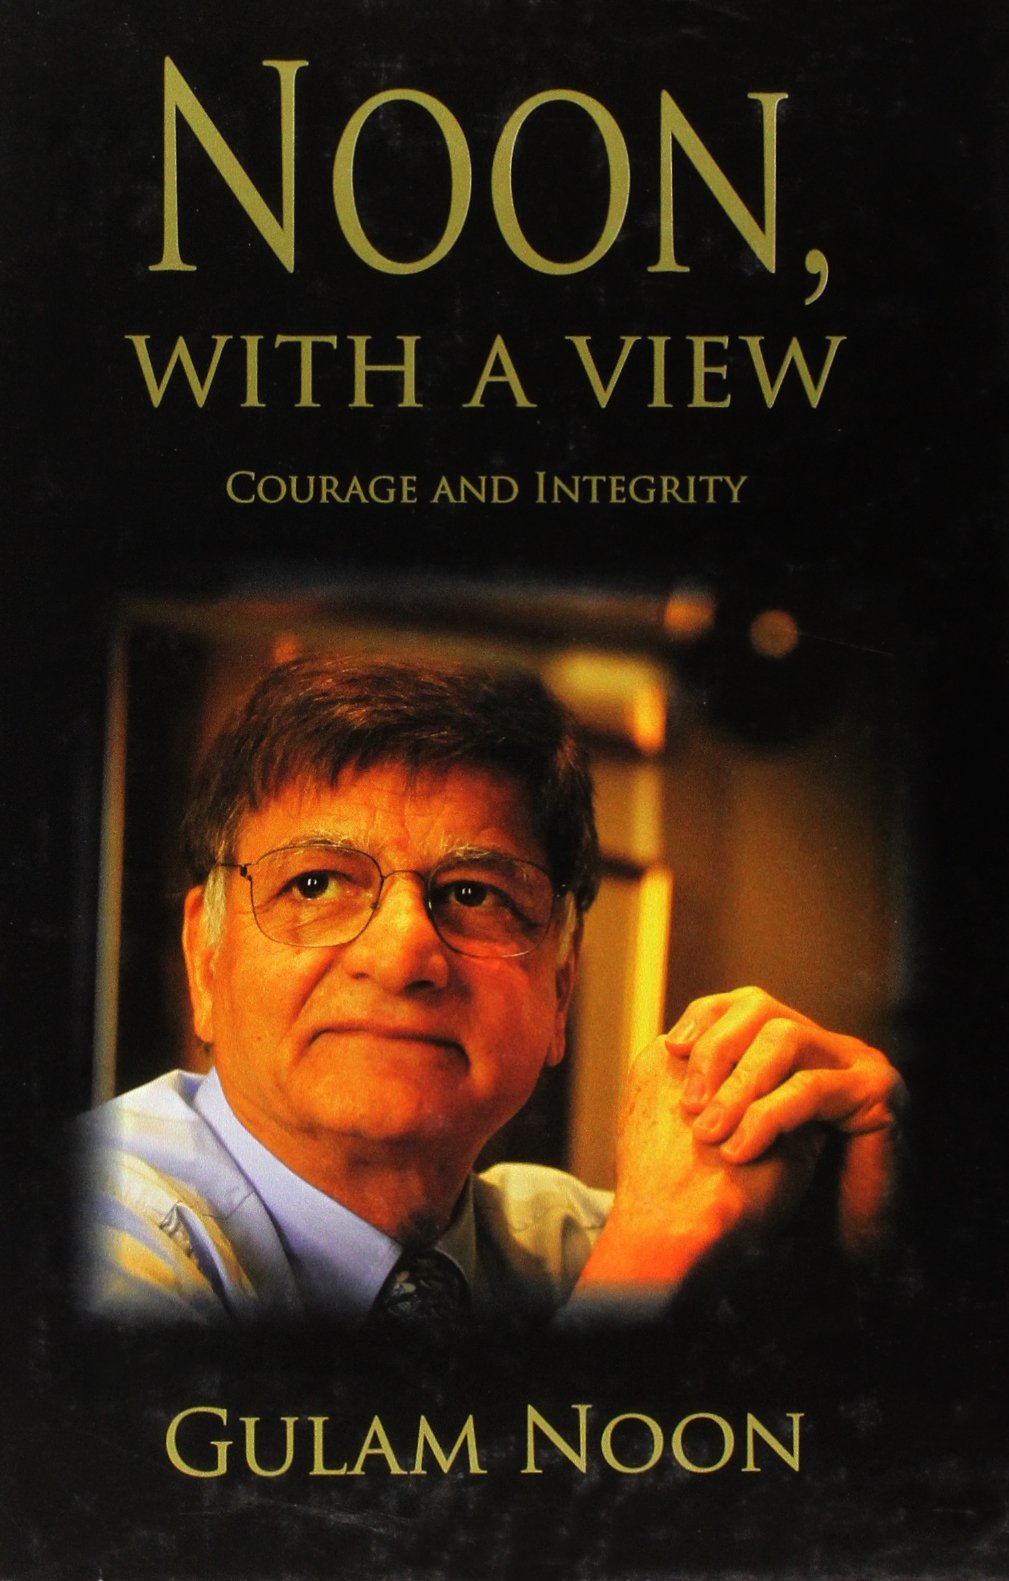 Noon with a View: Courage and Integrity